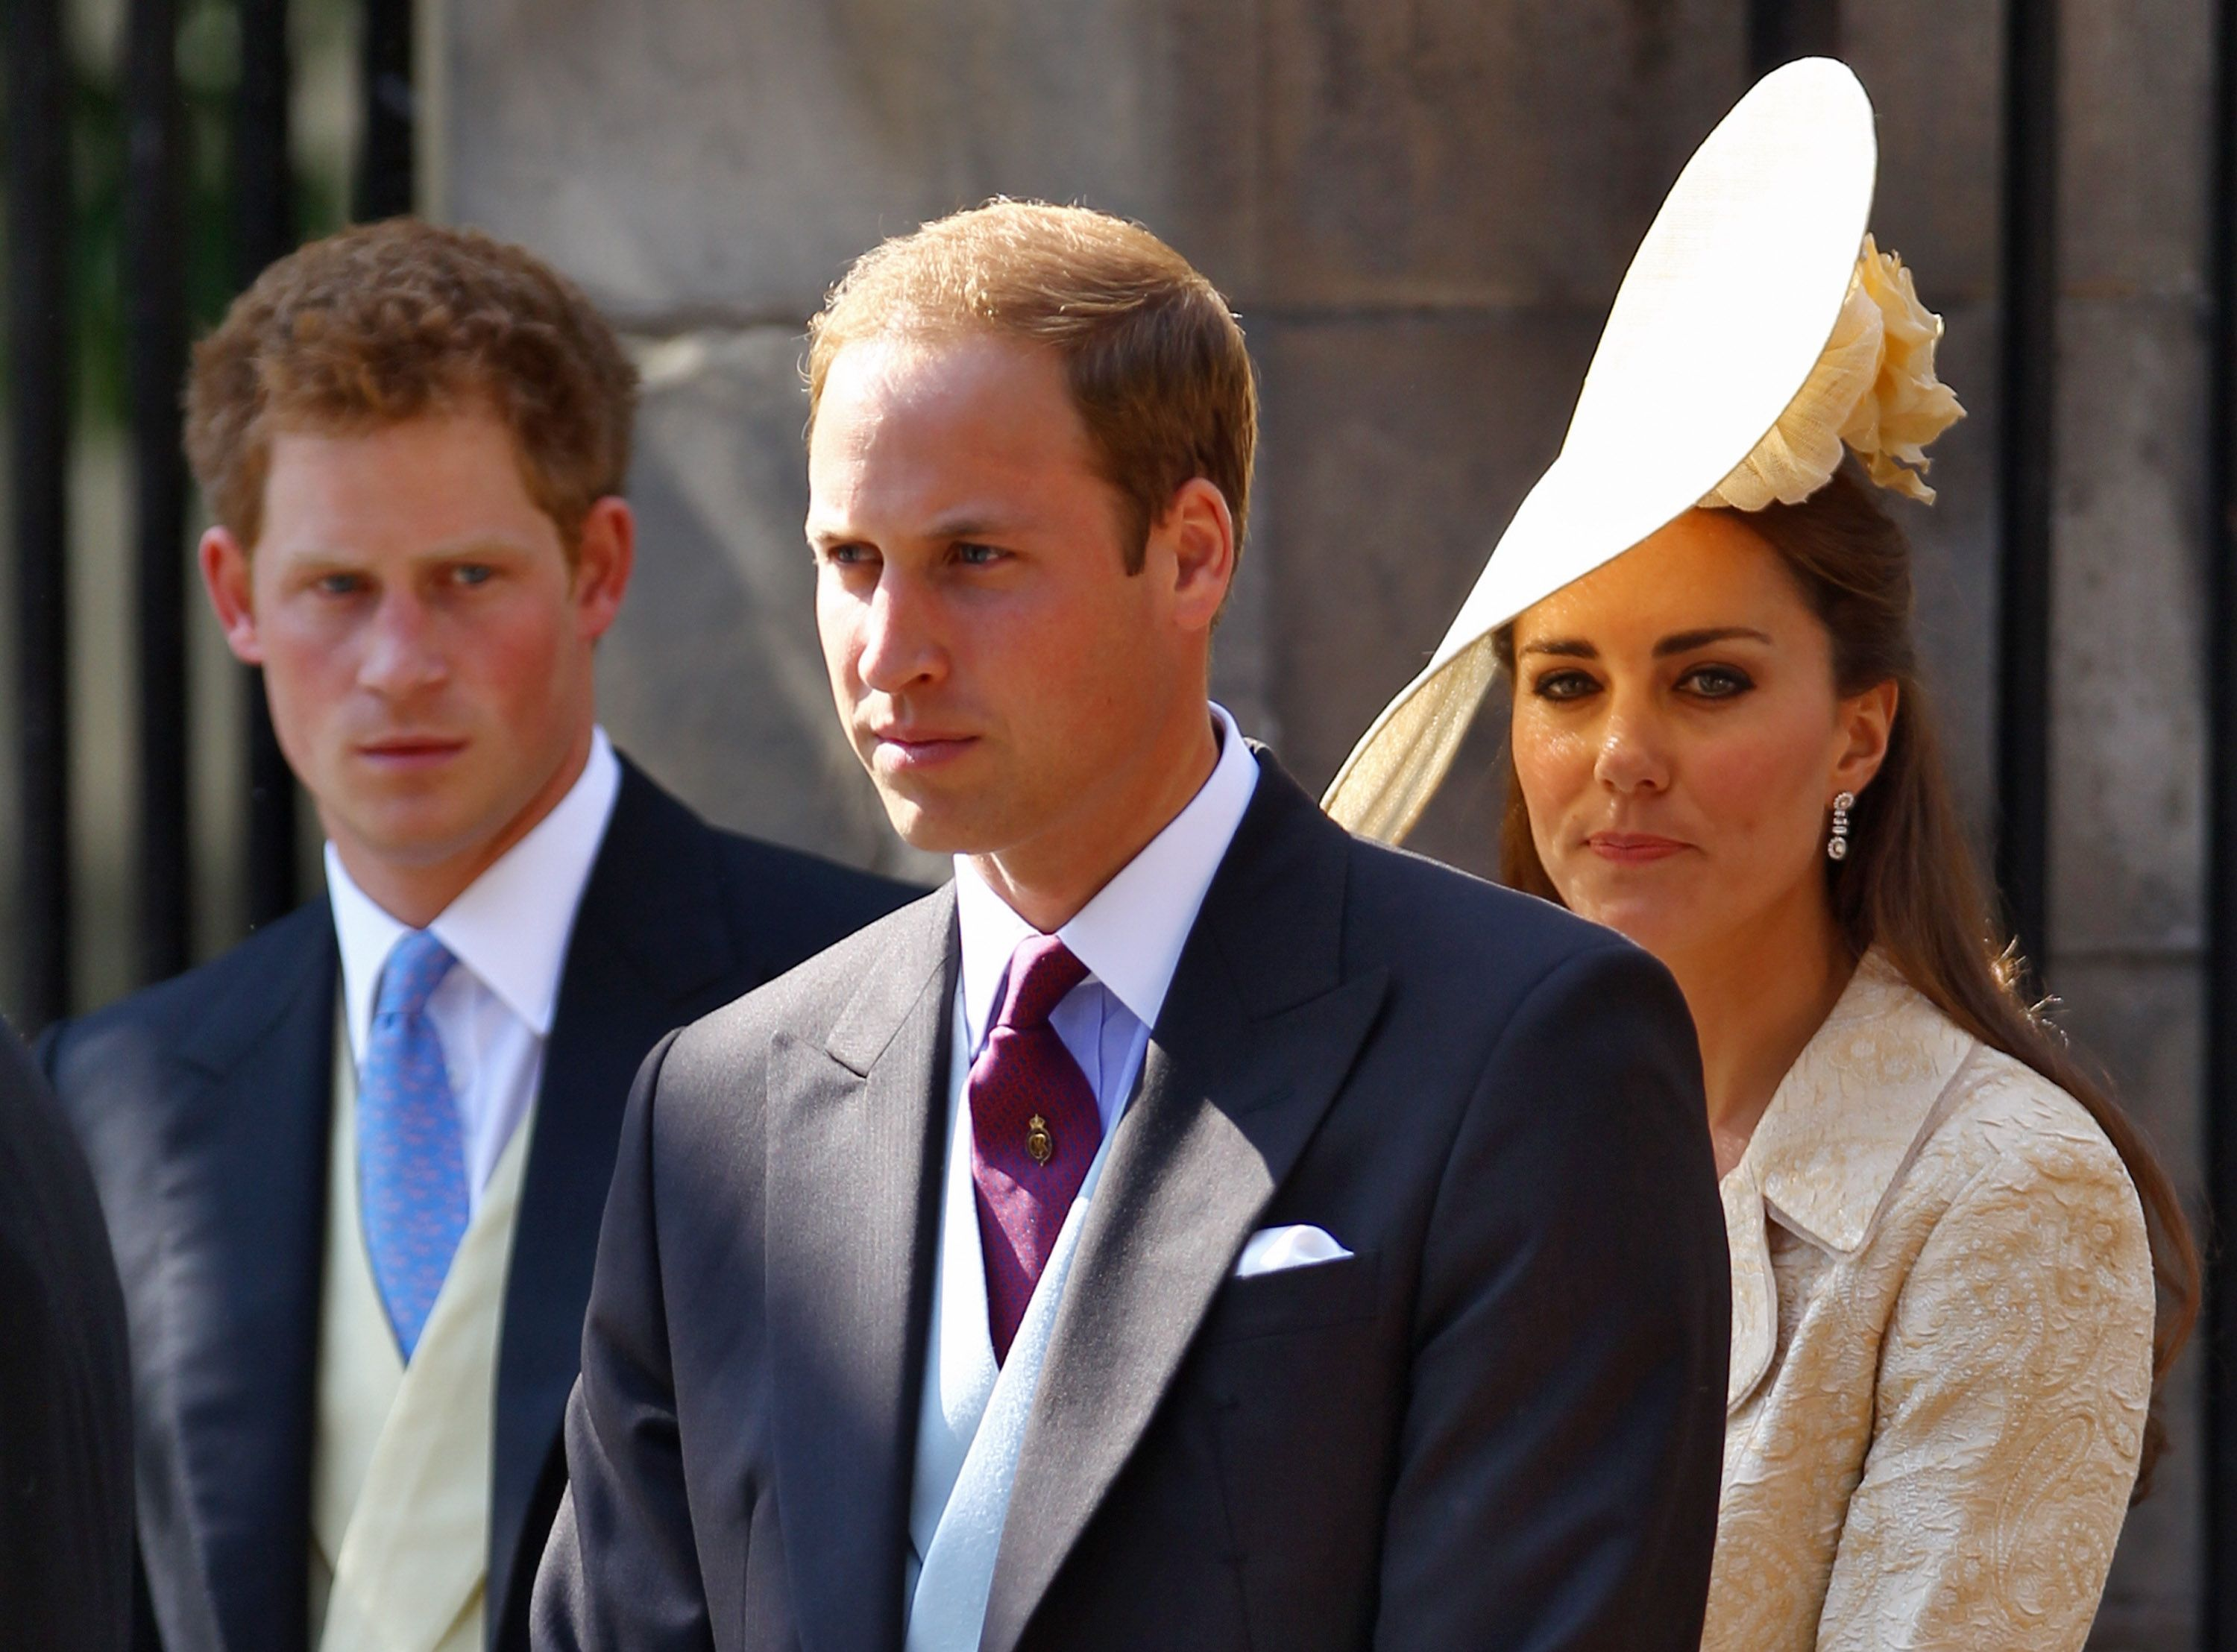 Prince Harry, Prince William, and Duchess Kate depart after the royal wedding of Zara Phillips and Mike Tindall on July 30, 2011, in Edinburgh, Scotland | Photo: Jeff J Mitchell/Getty Images